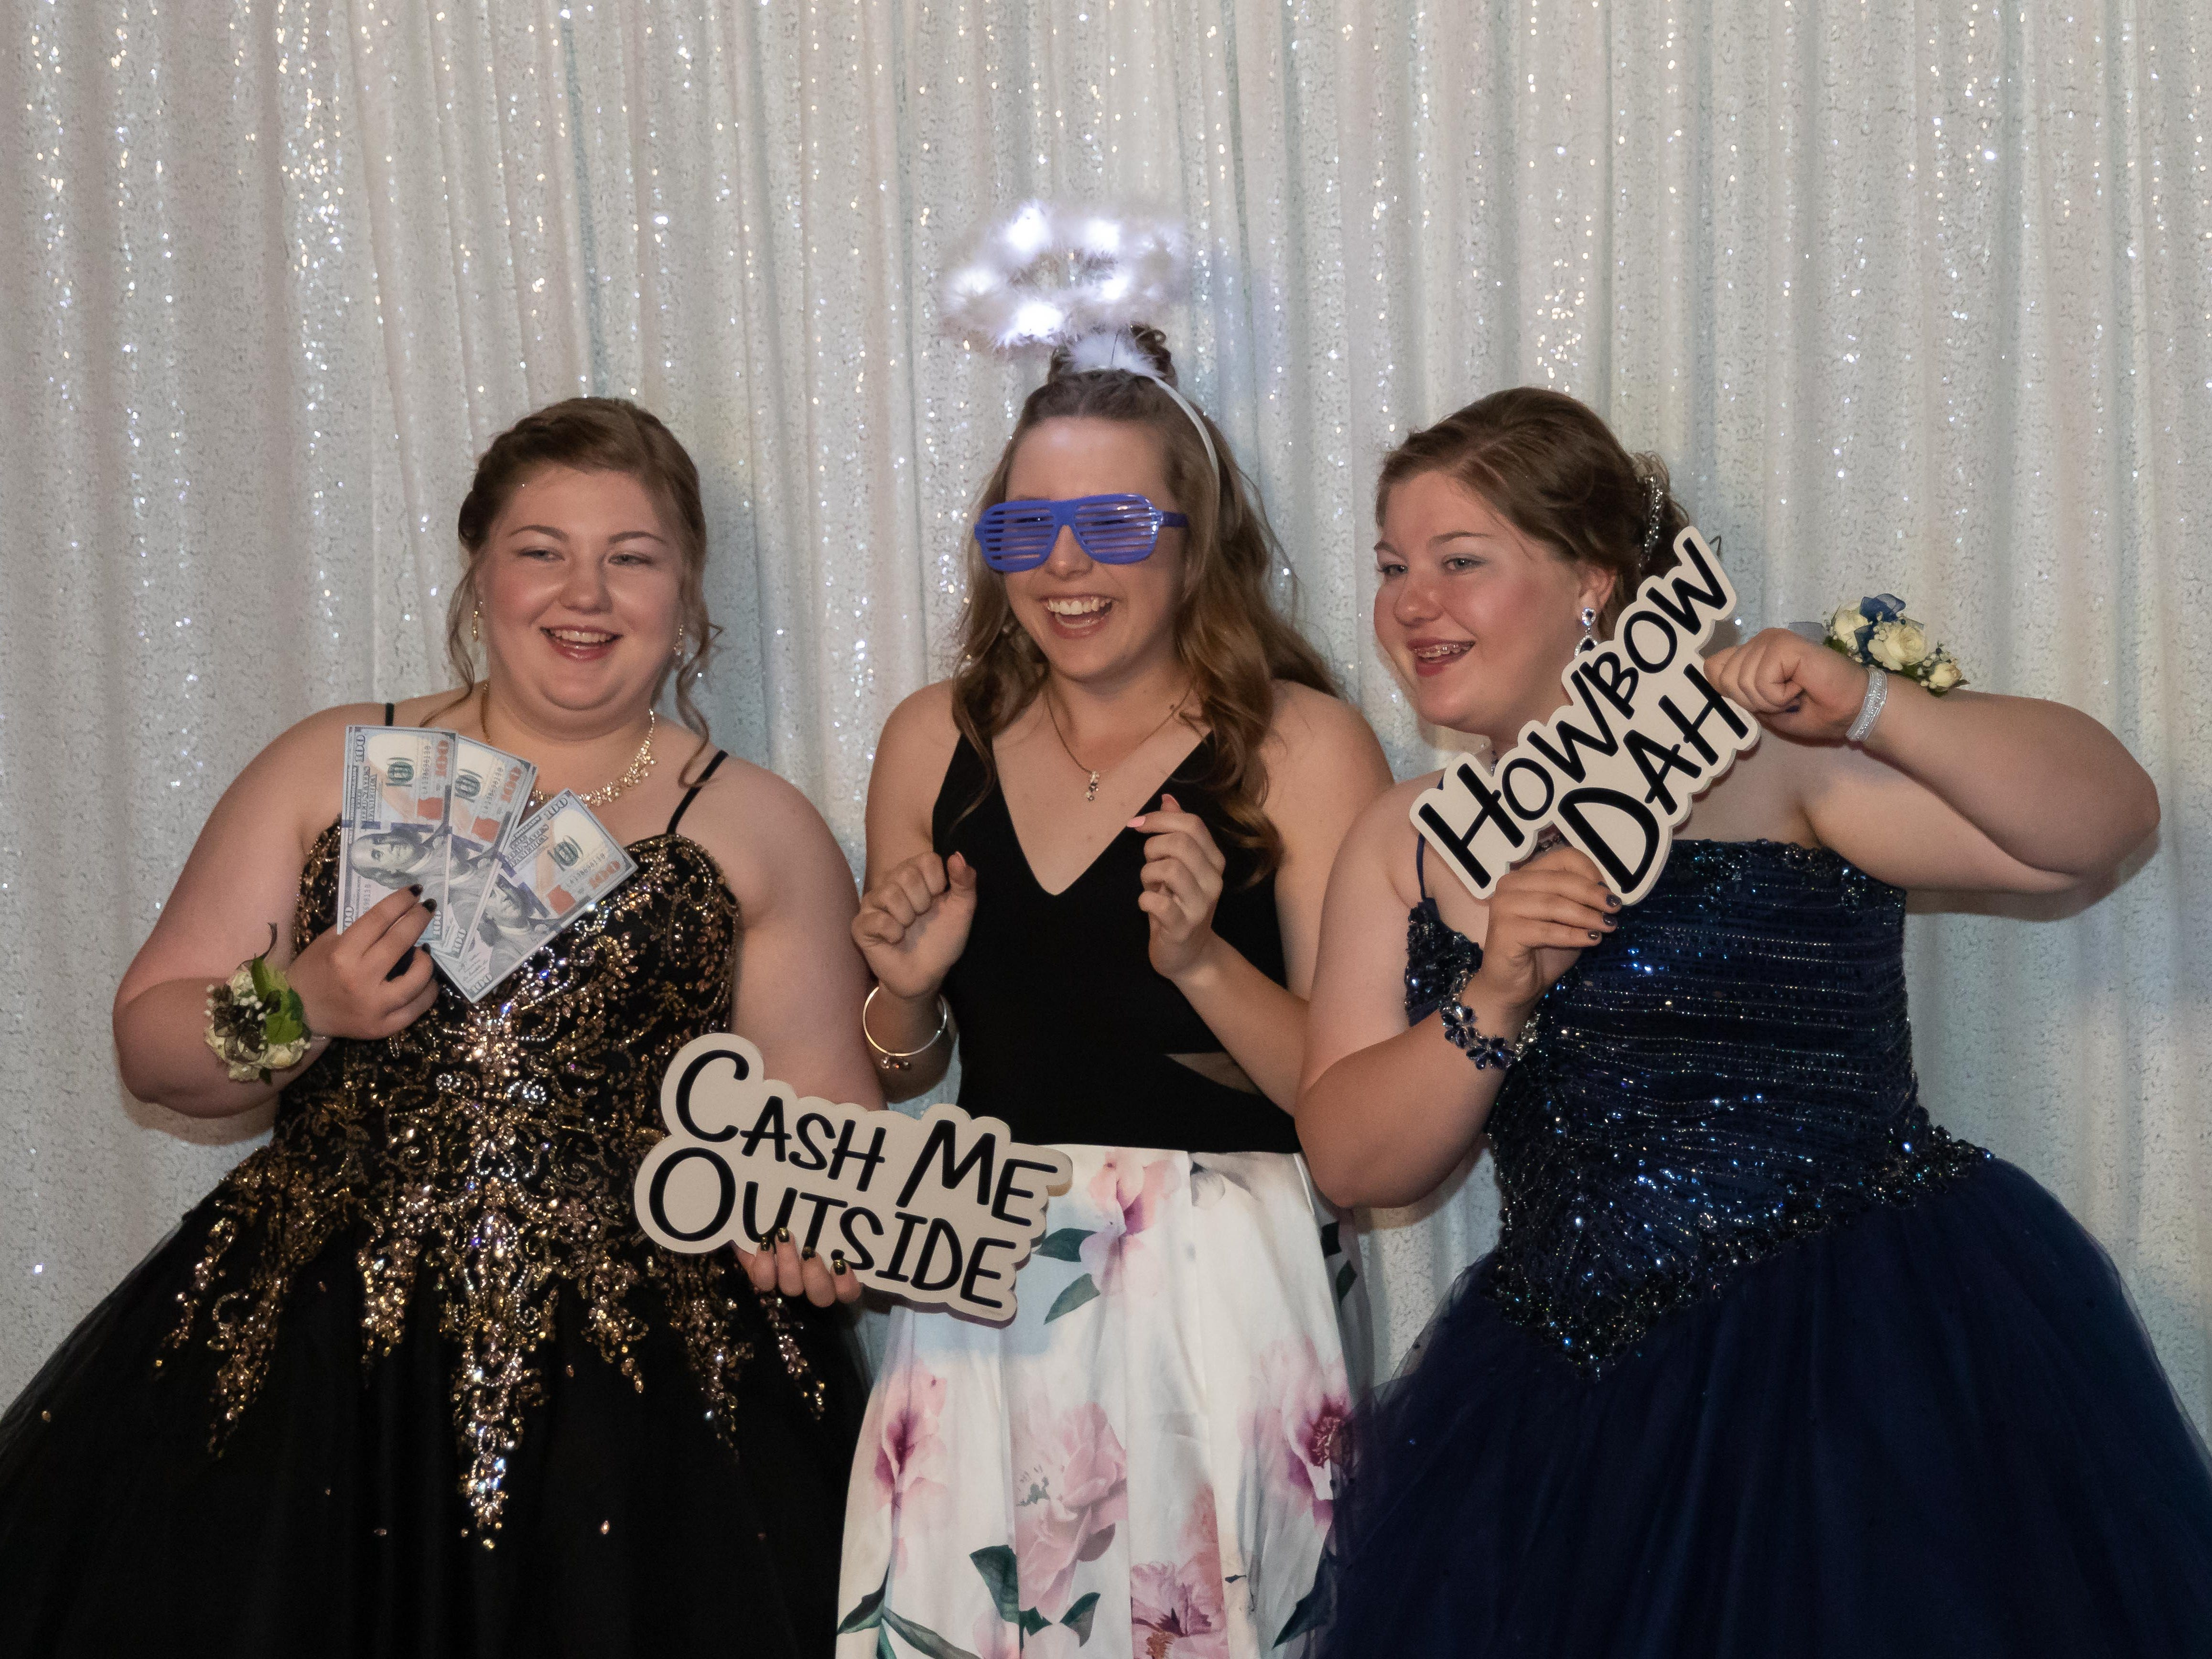 Students pose for a photo during the Lincoln High School prom on Saturday, May 4, 2019, at the high school in Wisconsin Rapids.